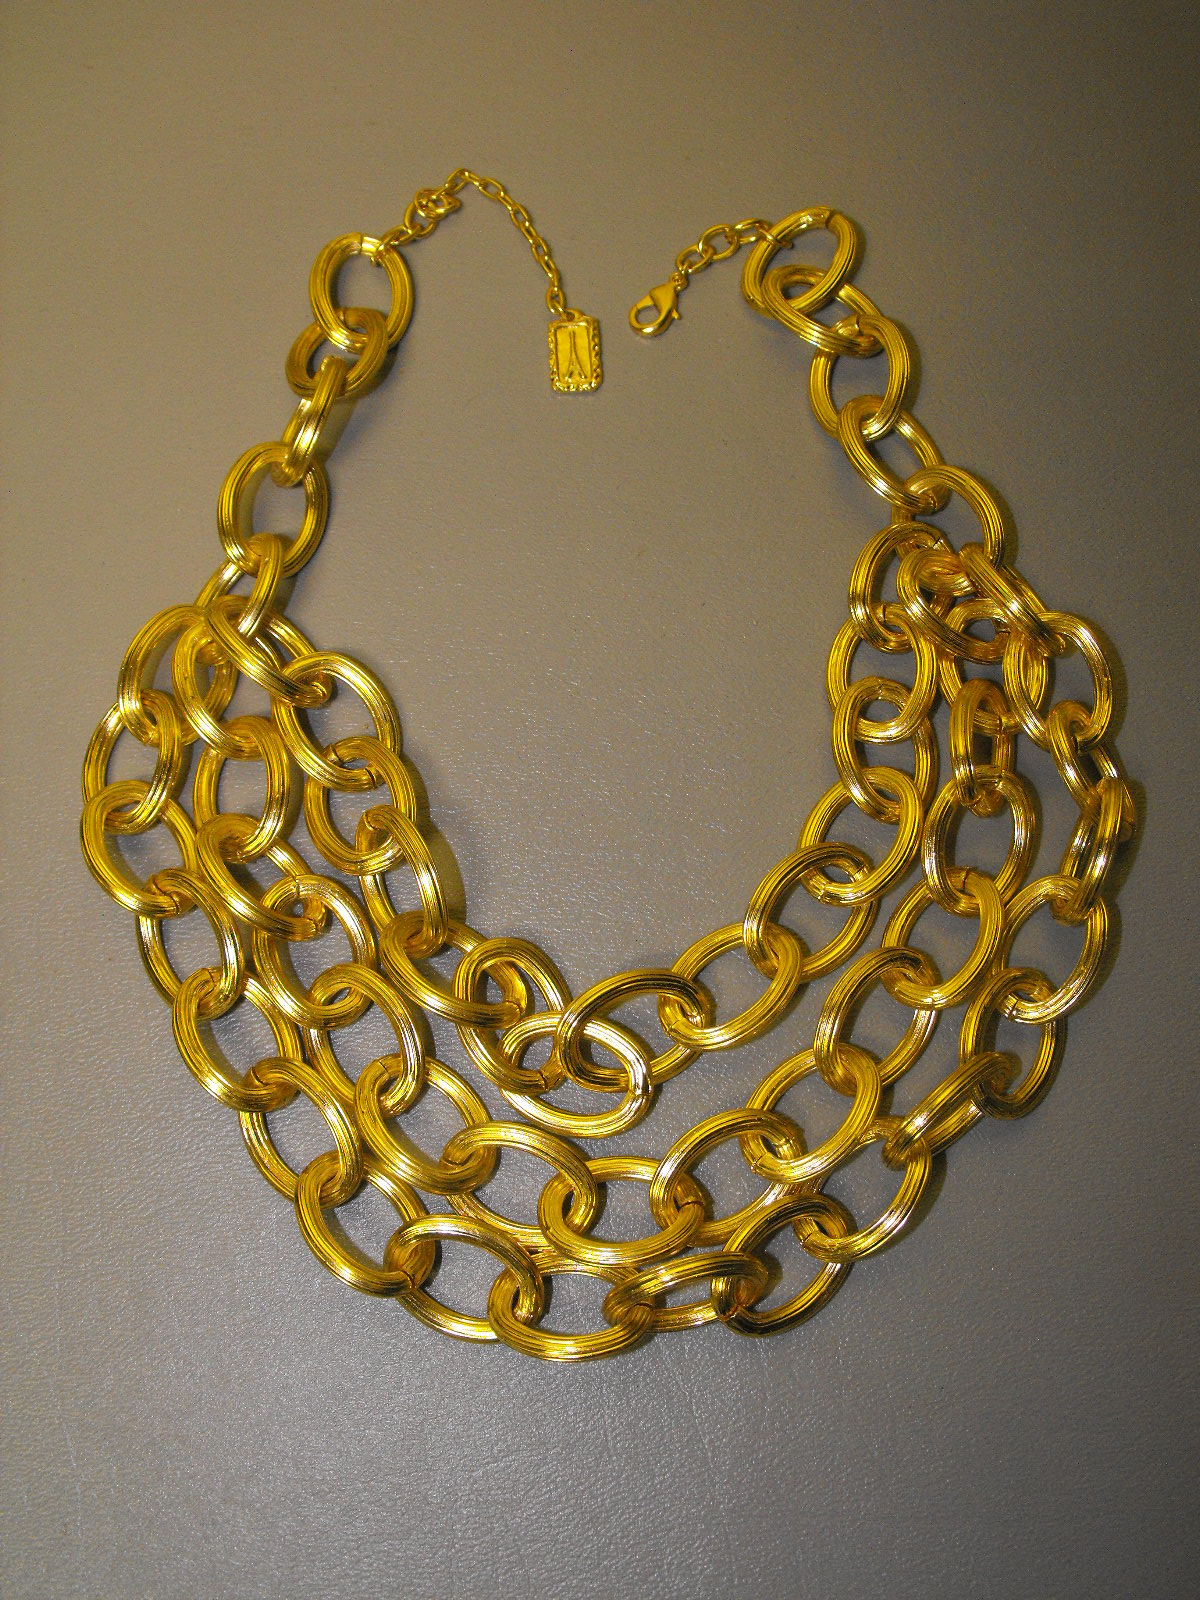 24 Kt Gp French Designer 3 Strand Ribbed Chain Necklace